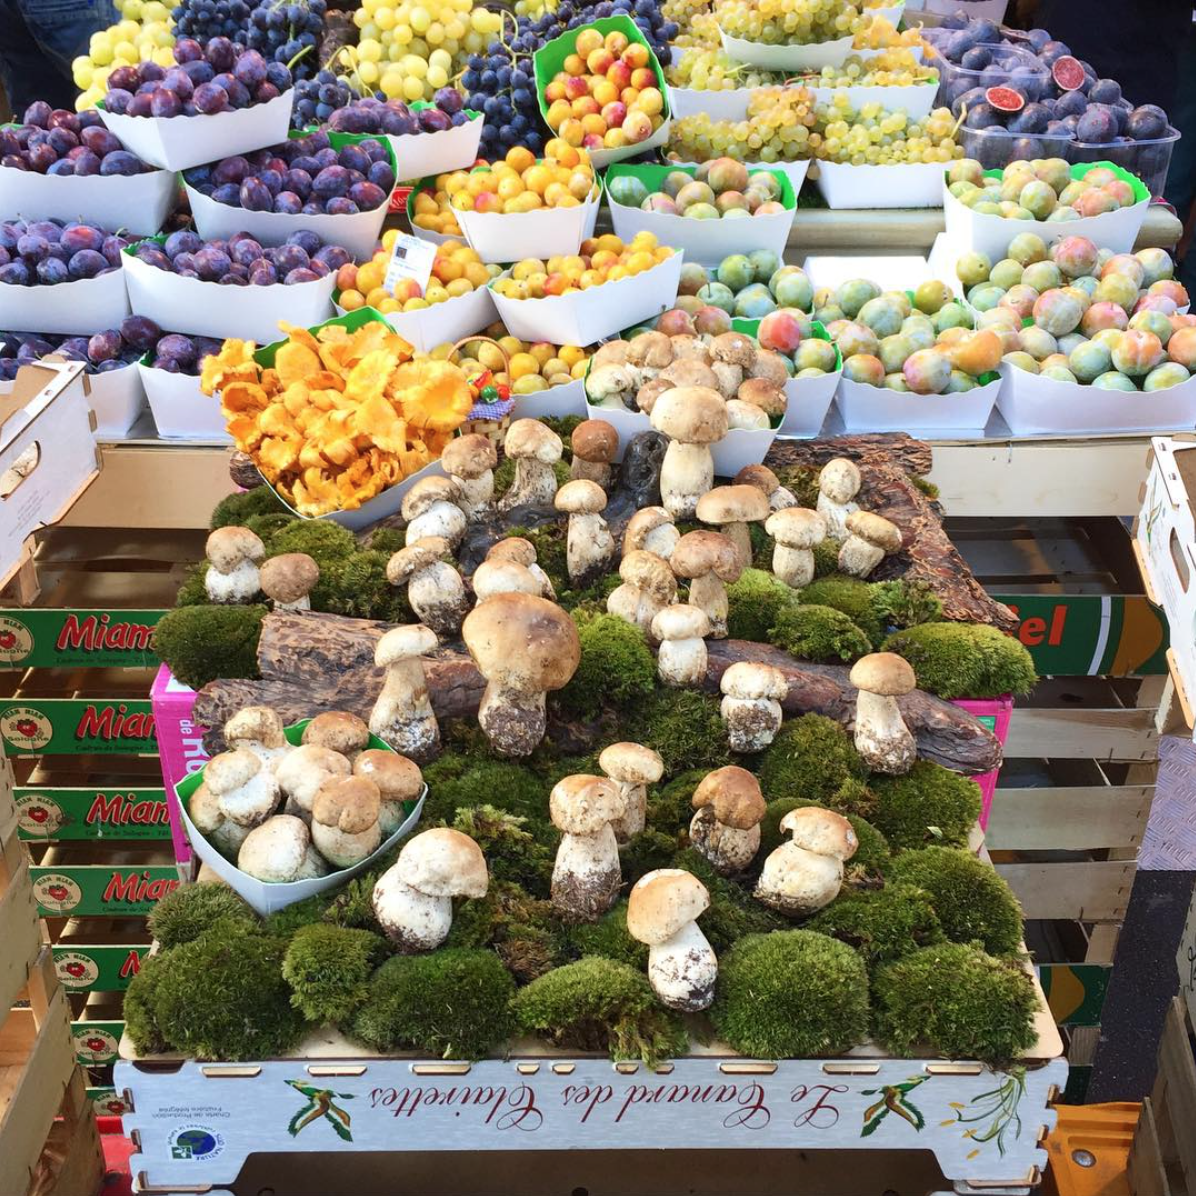 French Farmers Markets - Lisa Edoff